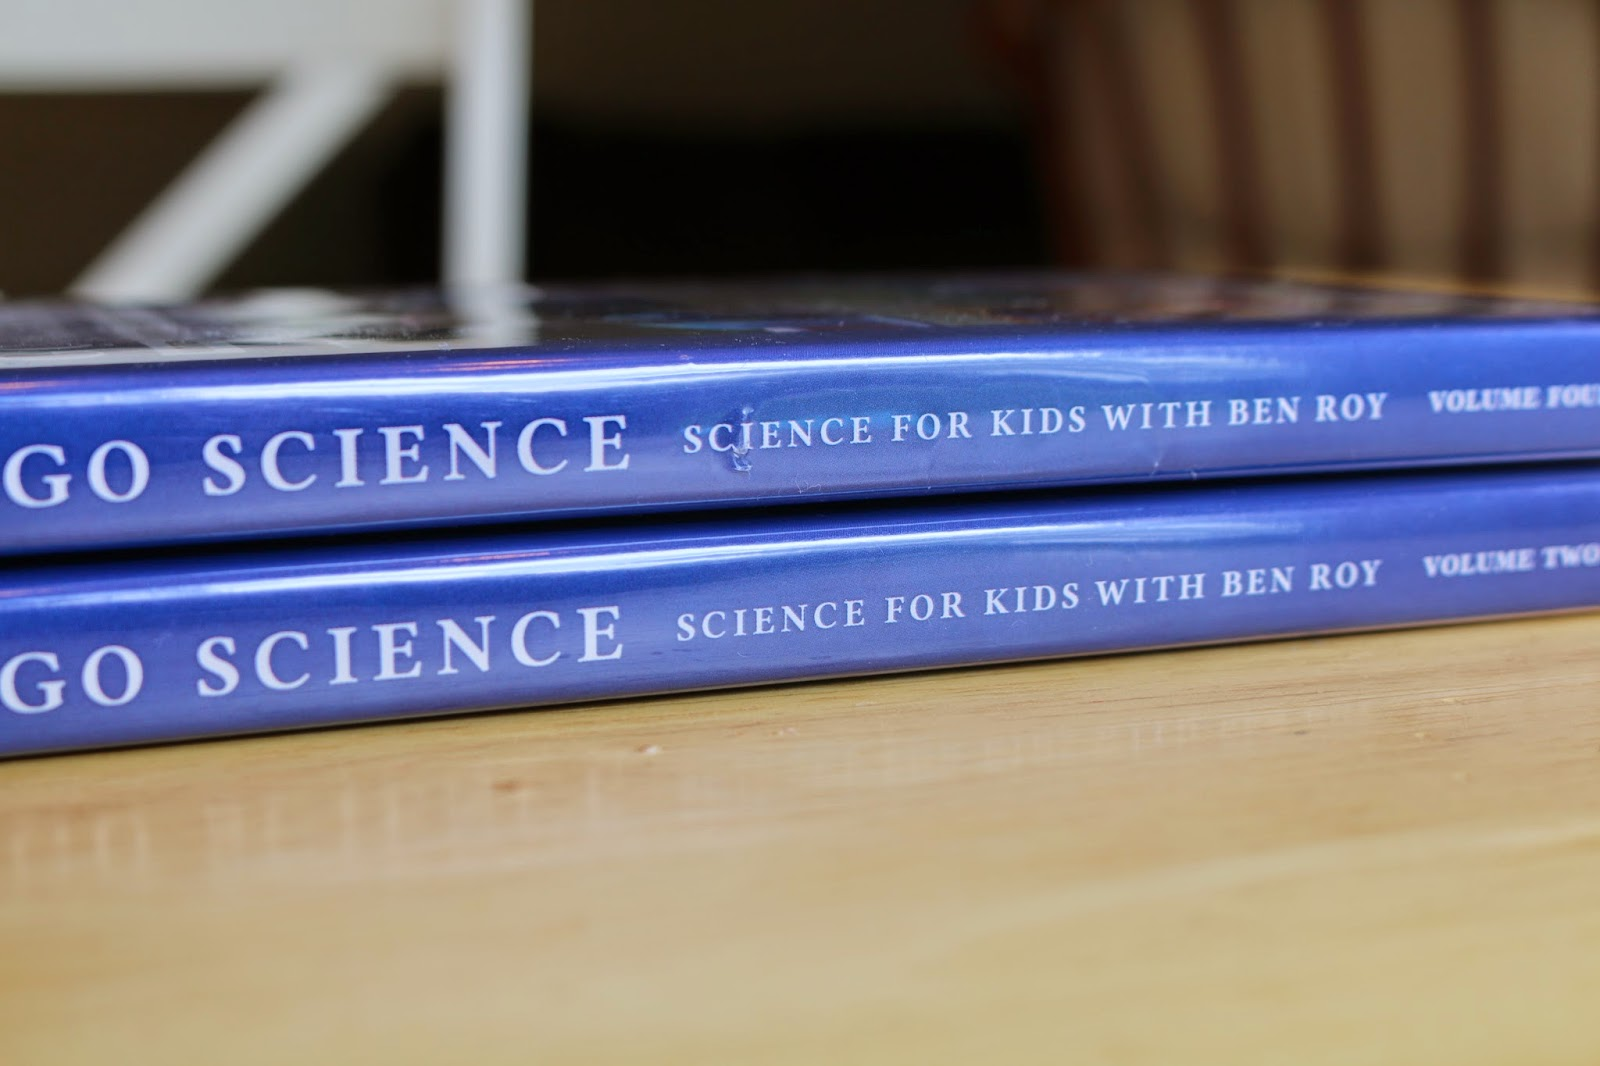 Go Science DVDs: Science Curriculum for Kids